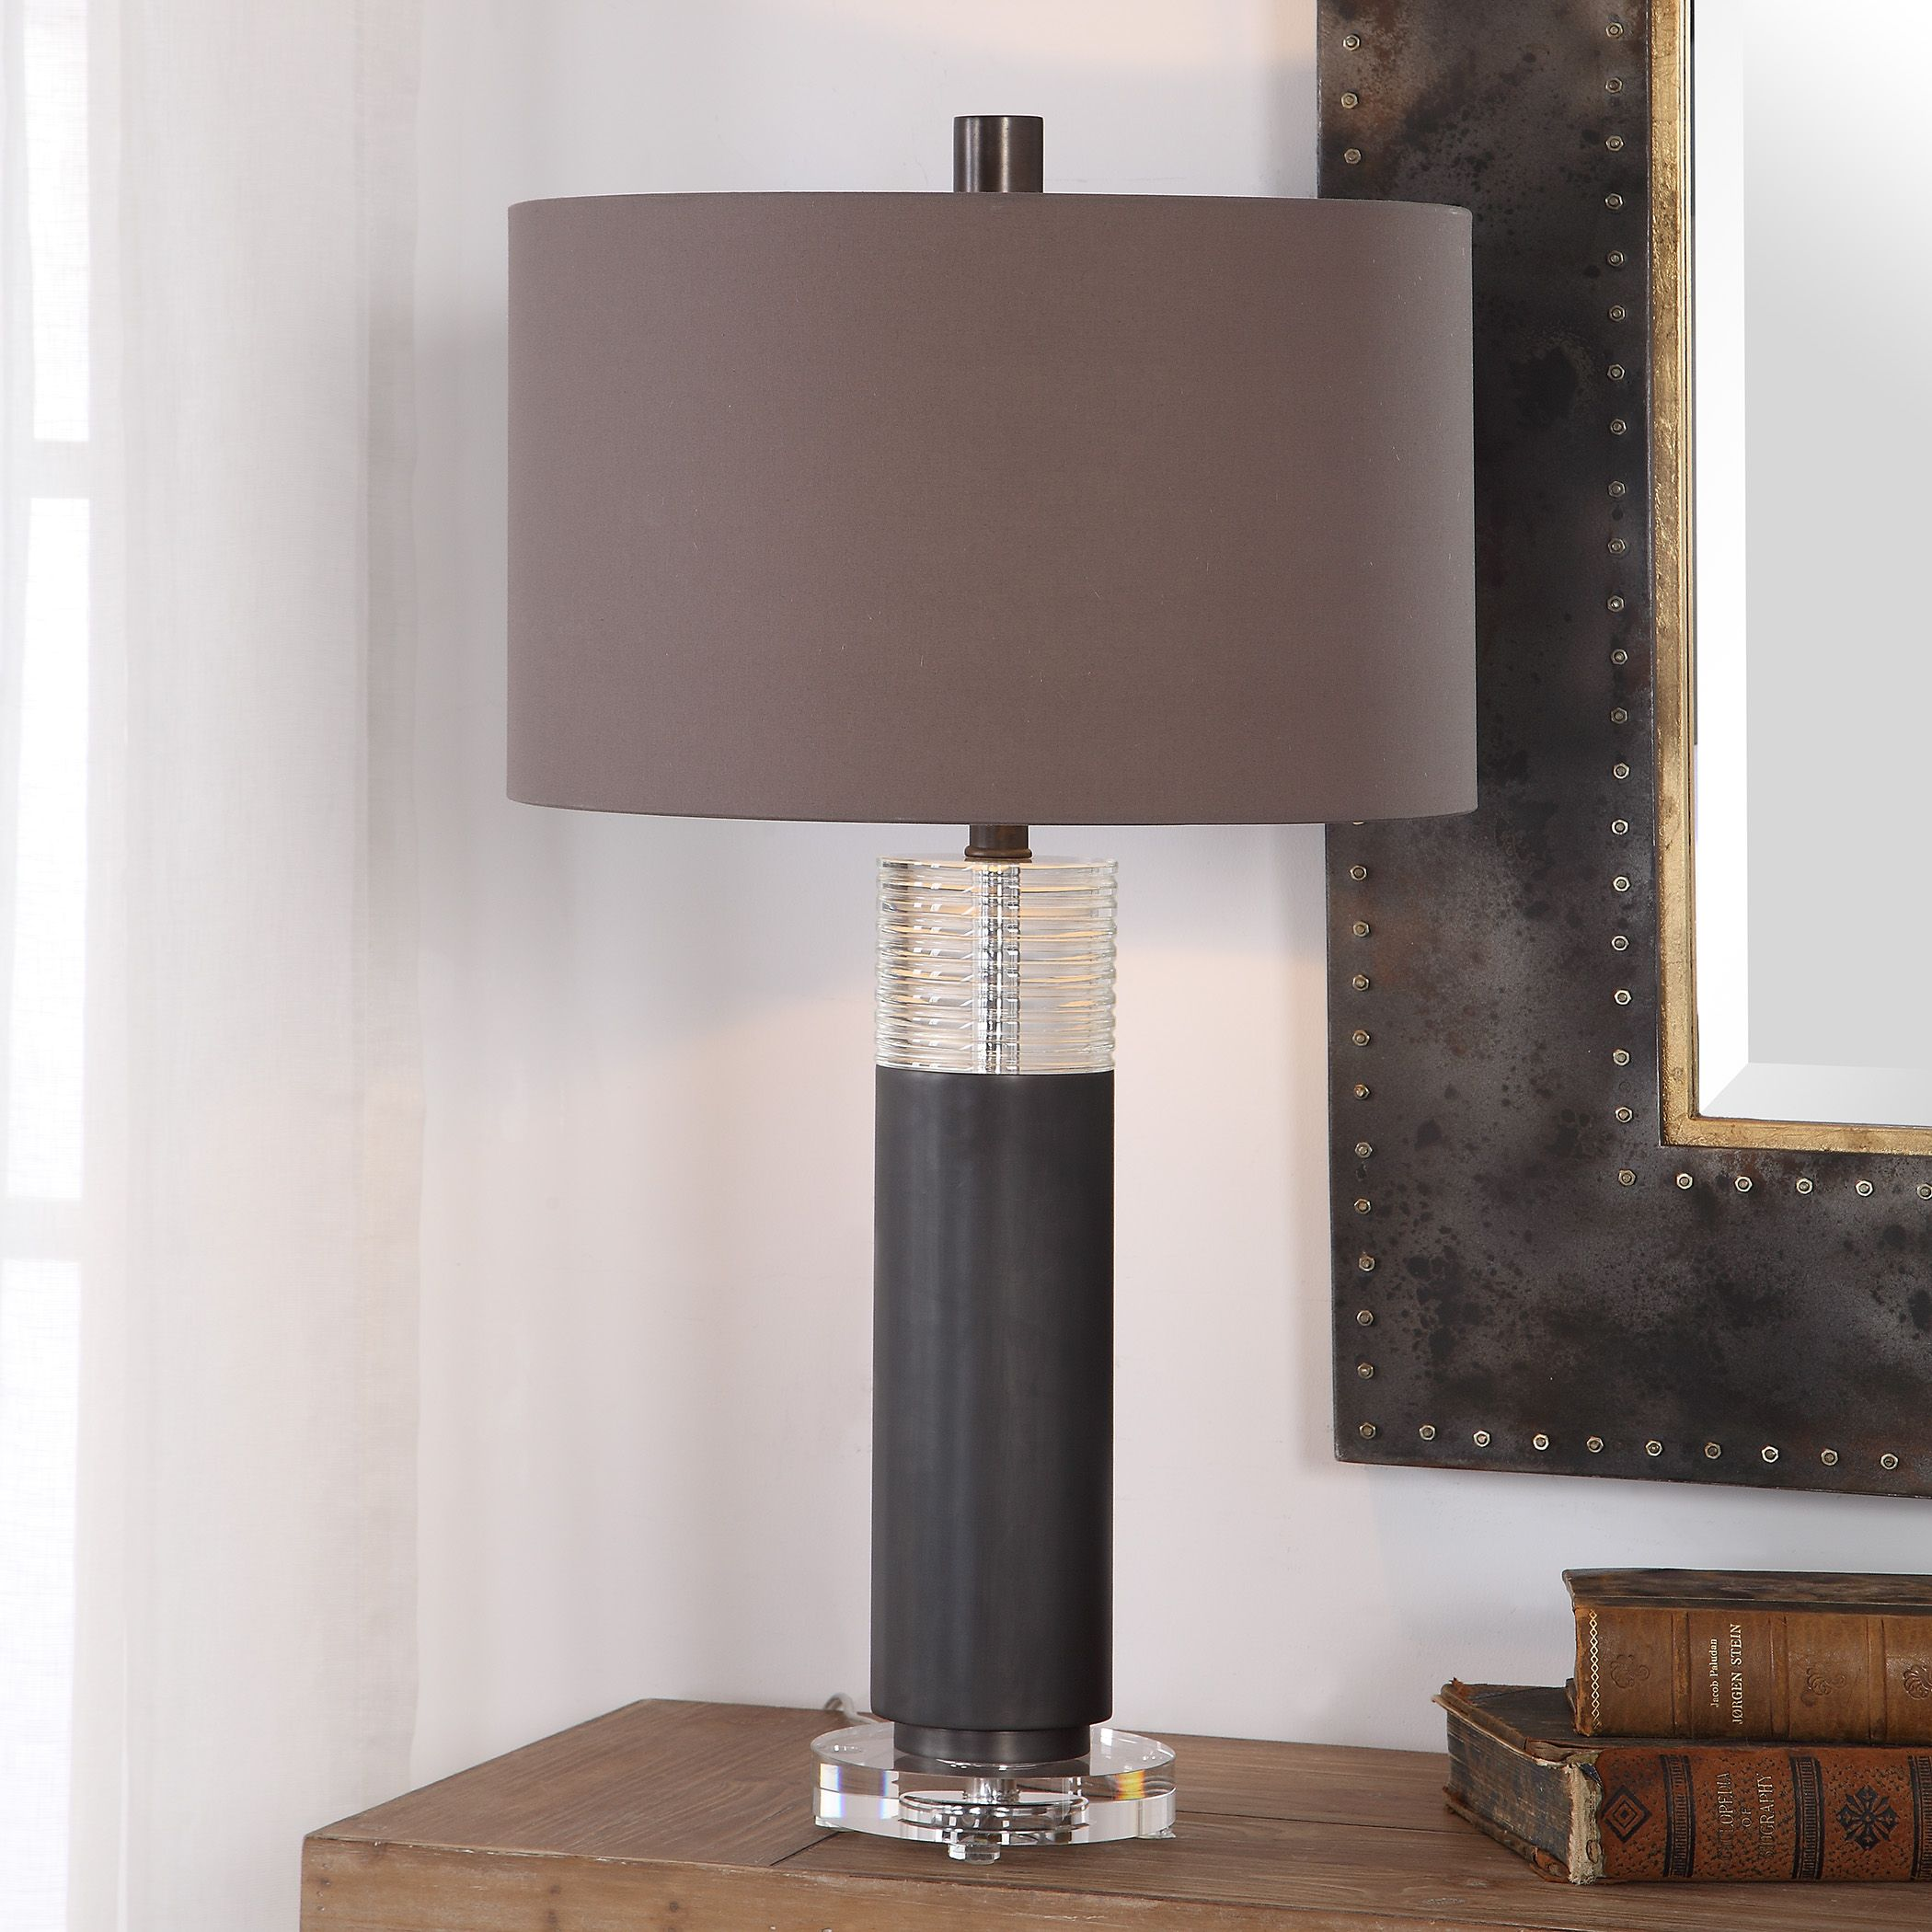 Details About Contemporary Metal Glass Table Lamp Living Room Bedroom Dining Lighting Modern